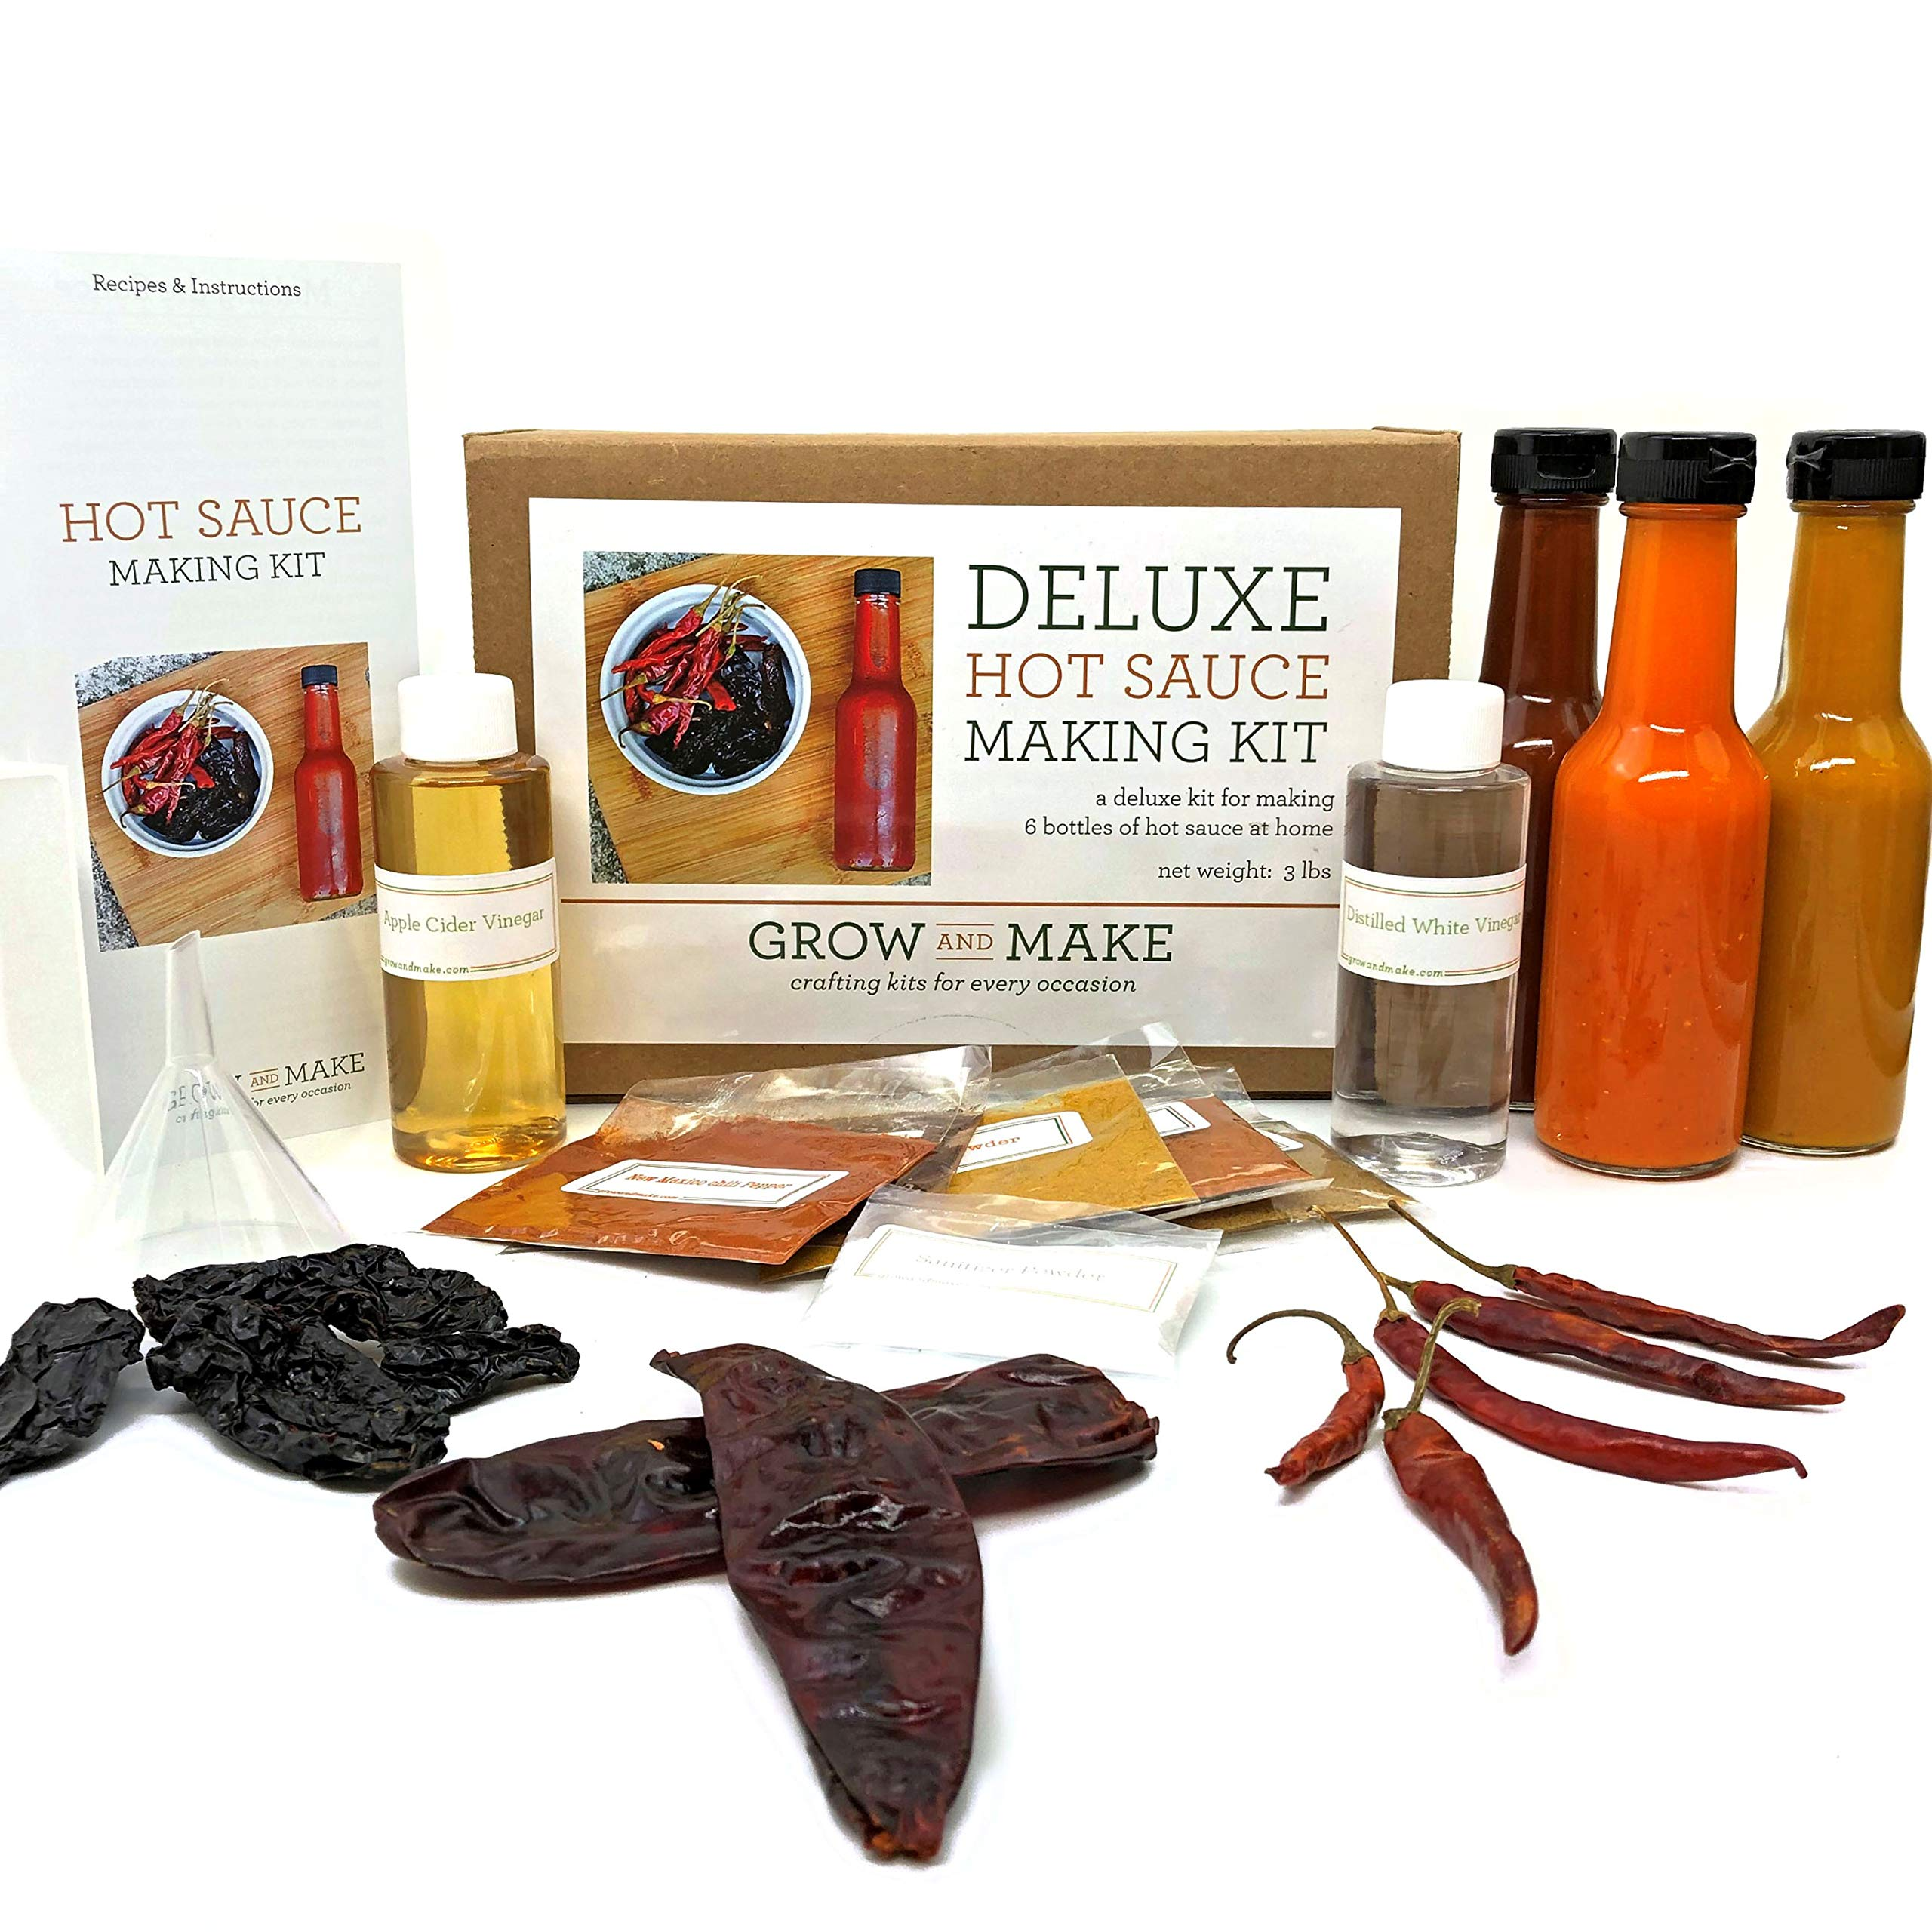 Grow and Make Deluxe DIY Hot Sauce Making Kit - Learn how to make 6 spicy sauces at home with chipotle, arbol, and guajillo peppers! by Grow and Make (Image #1)